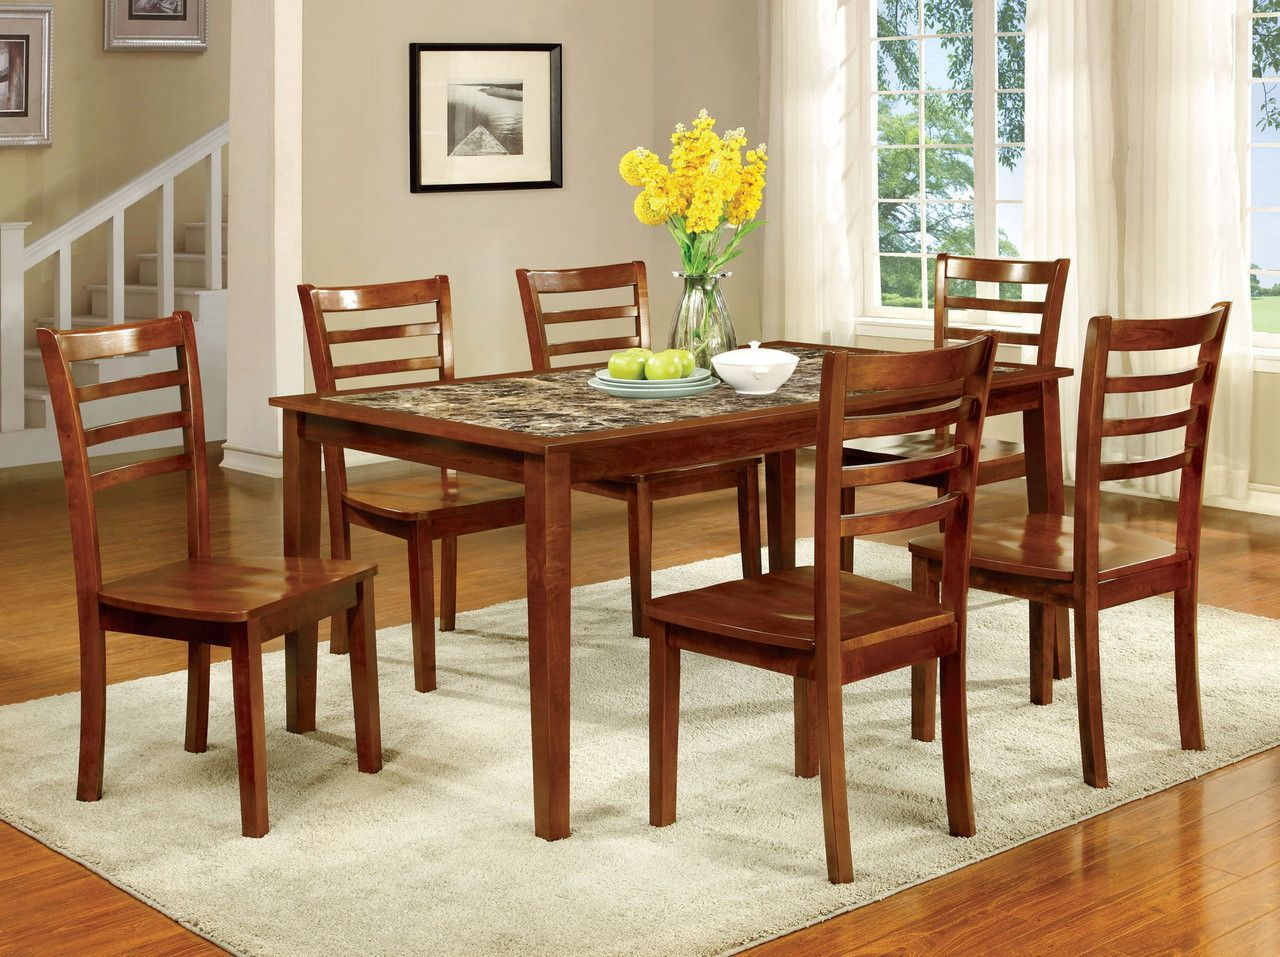 Dining Table Set Fordville I Collection Cm3521T-7Pk | Products ...